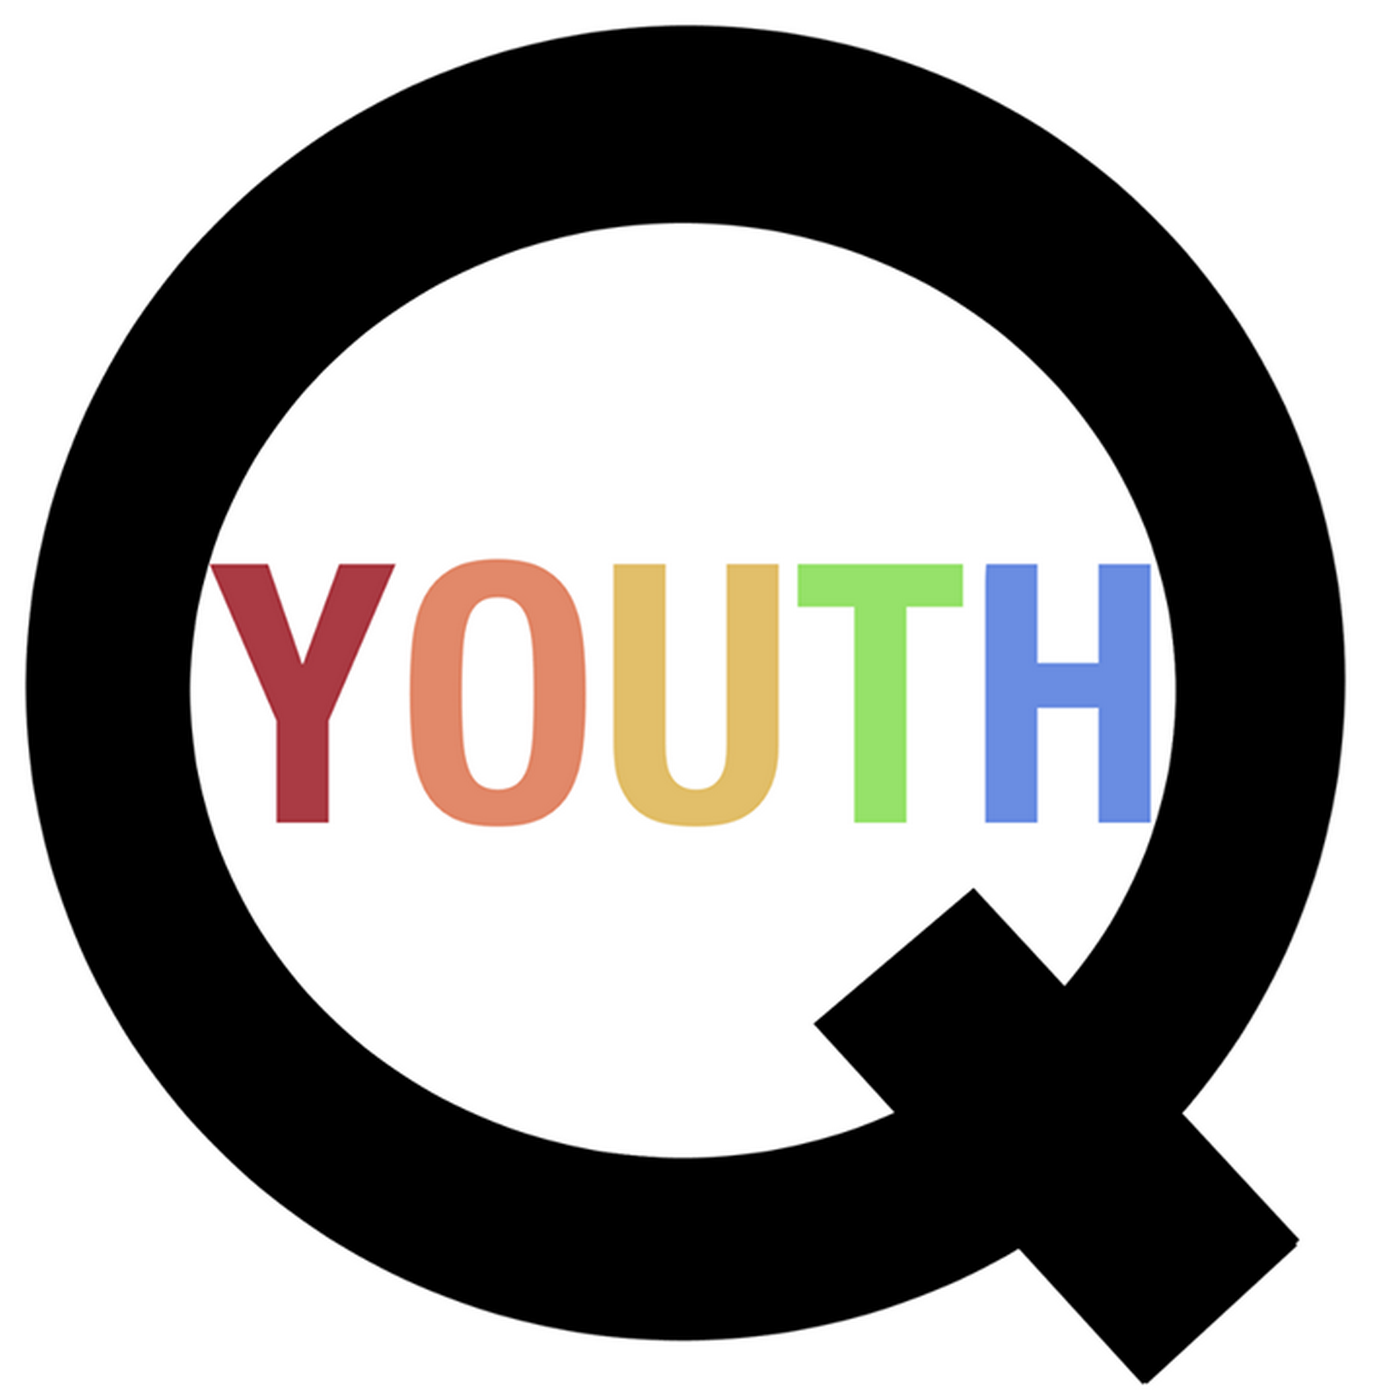 https://cdn.accessradio.org/StationFolder/freshfm/Images/Q Youth.png